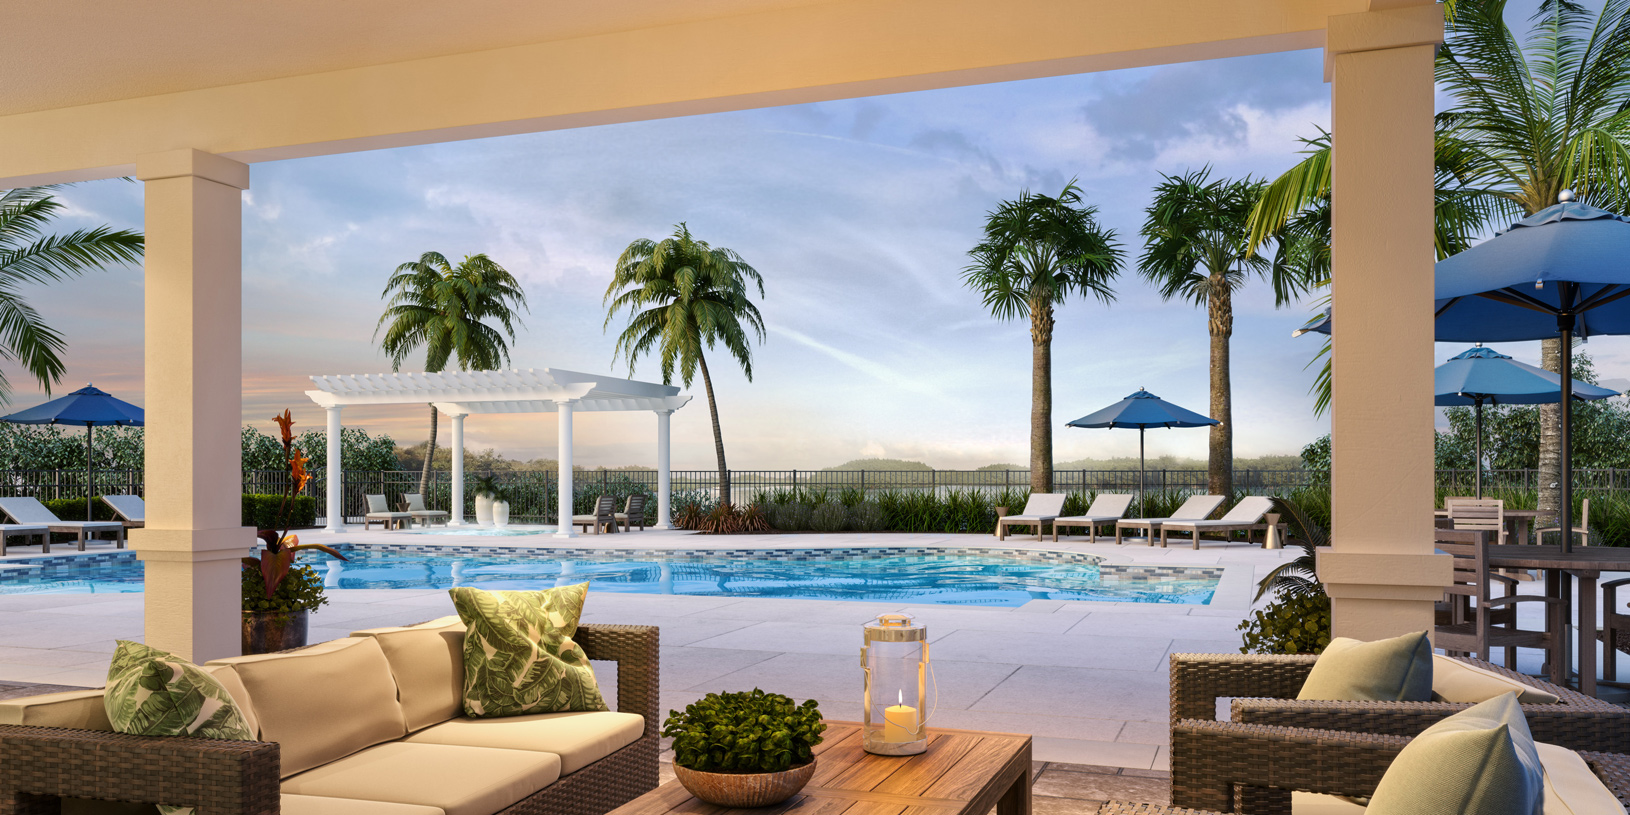 Relax under the covered lanai at the amenity center